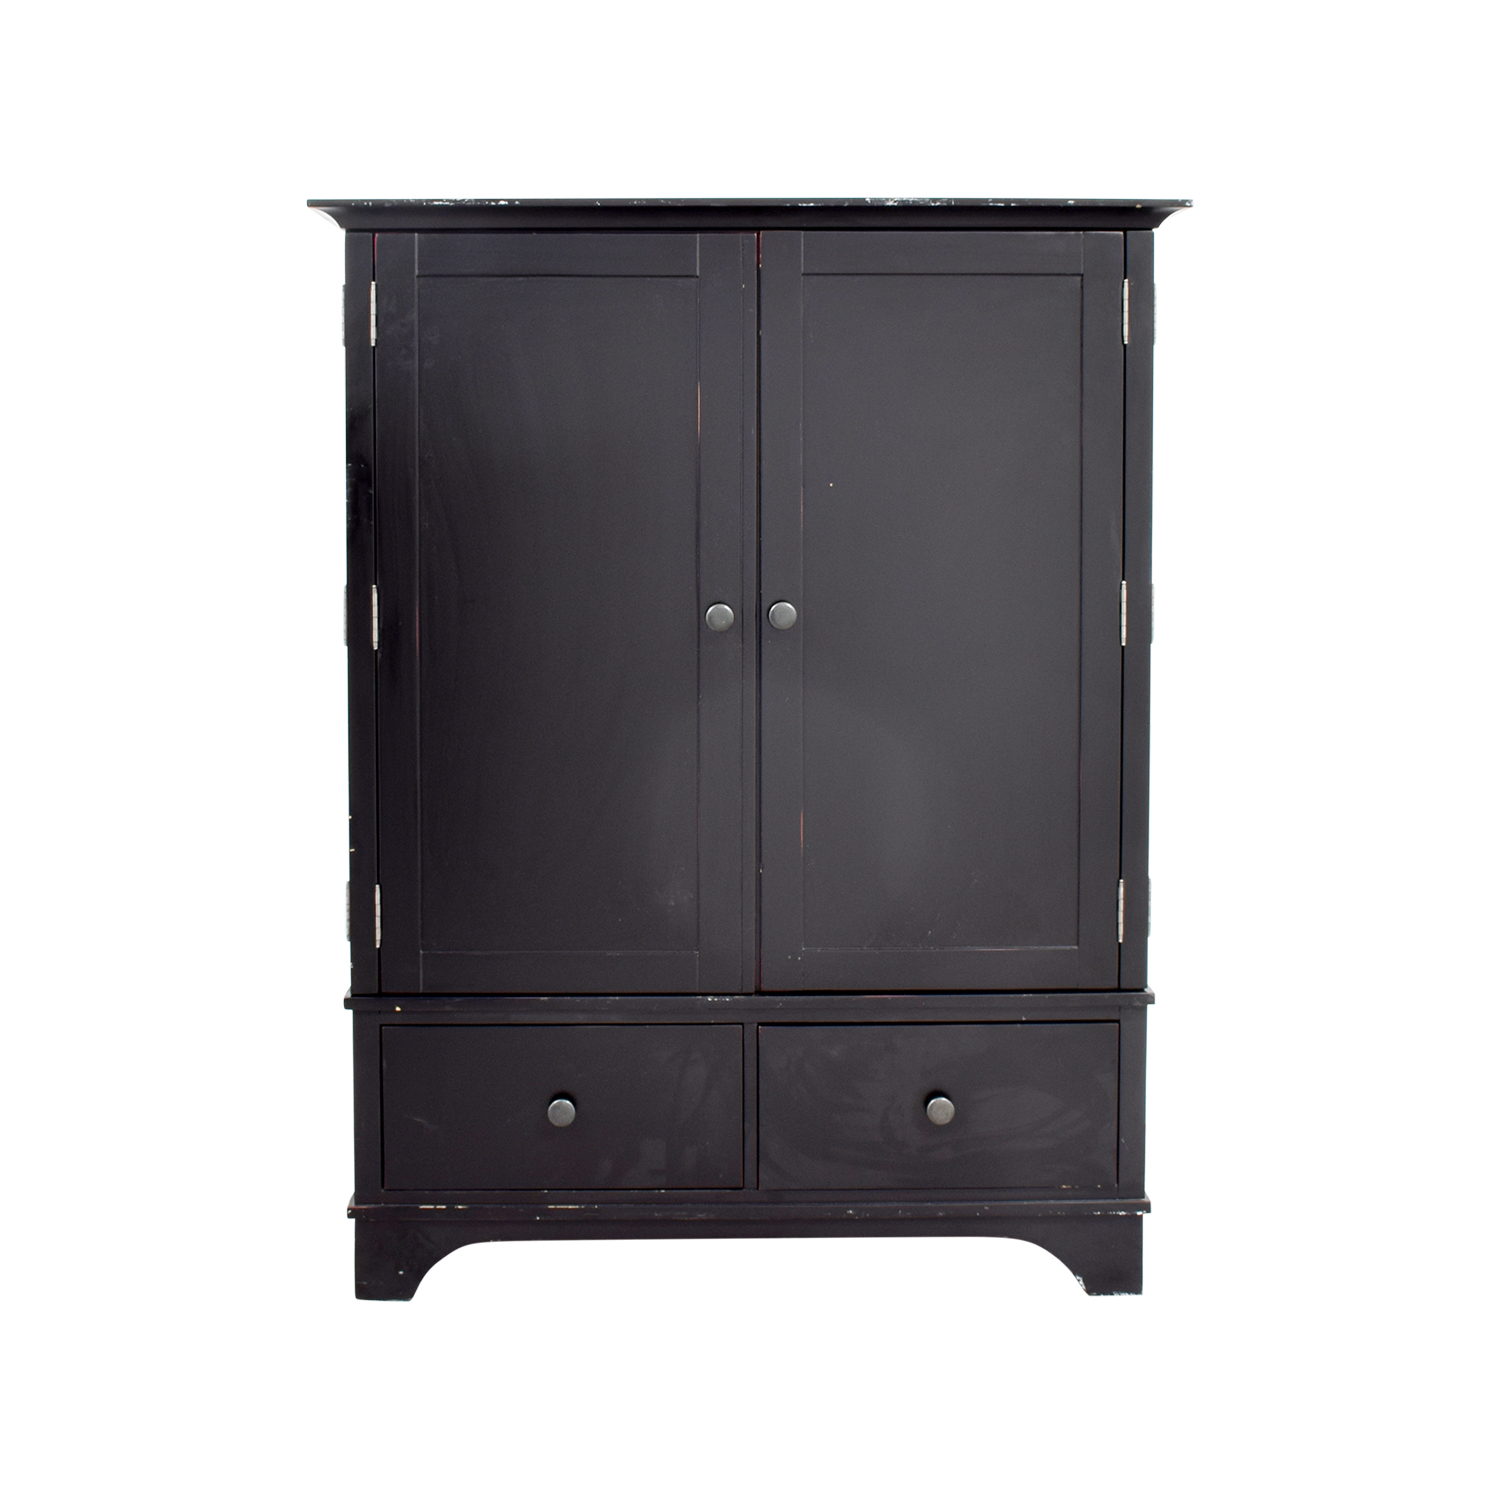 Pottery Barn Pottery Barn Media Cabinet / Storage